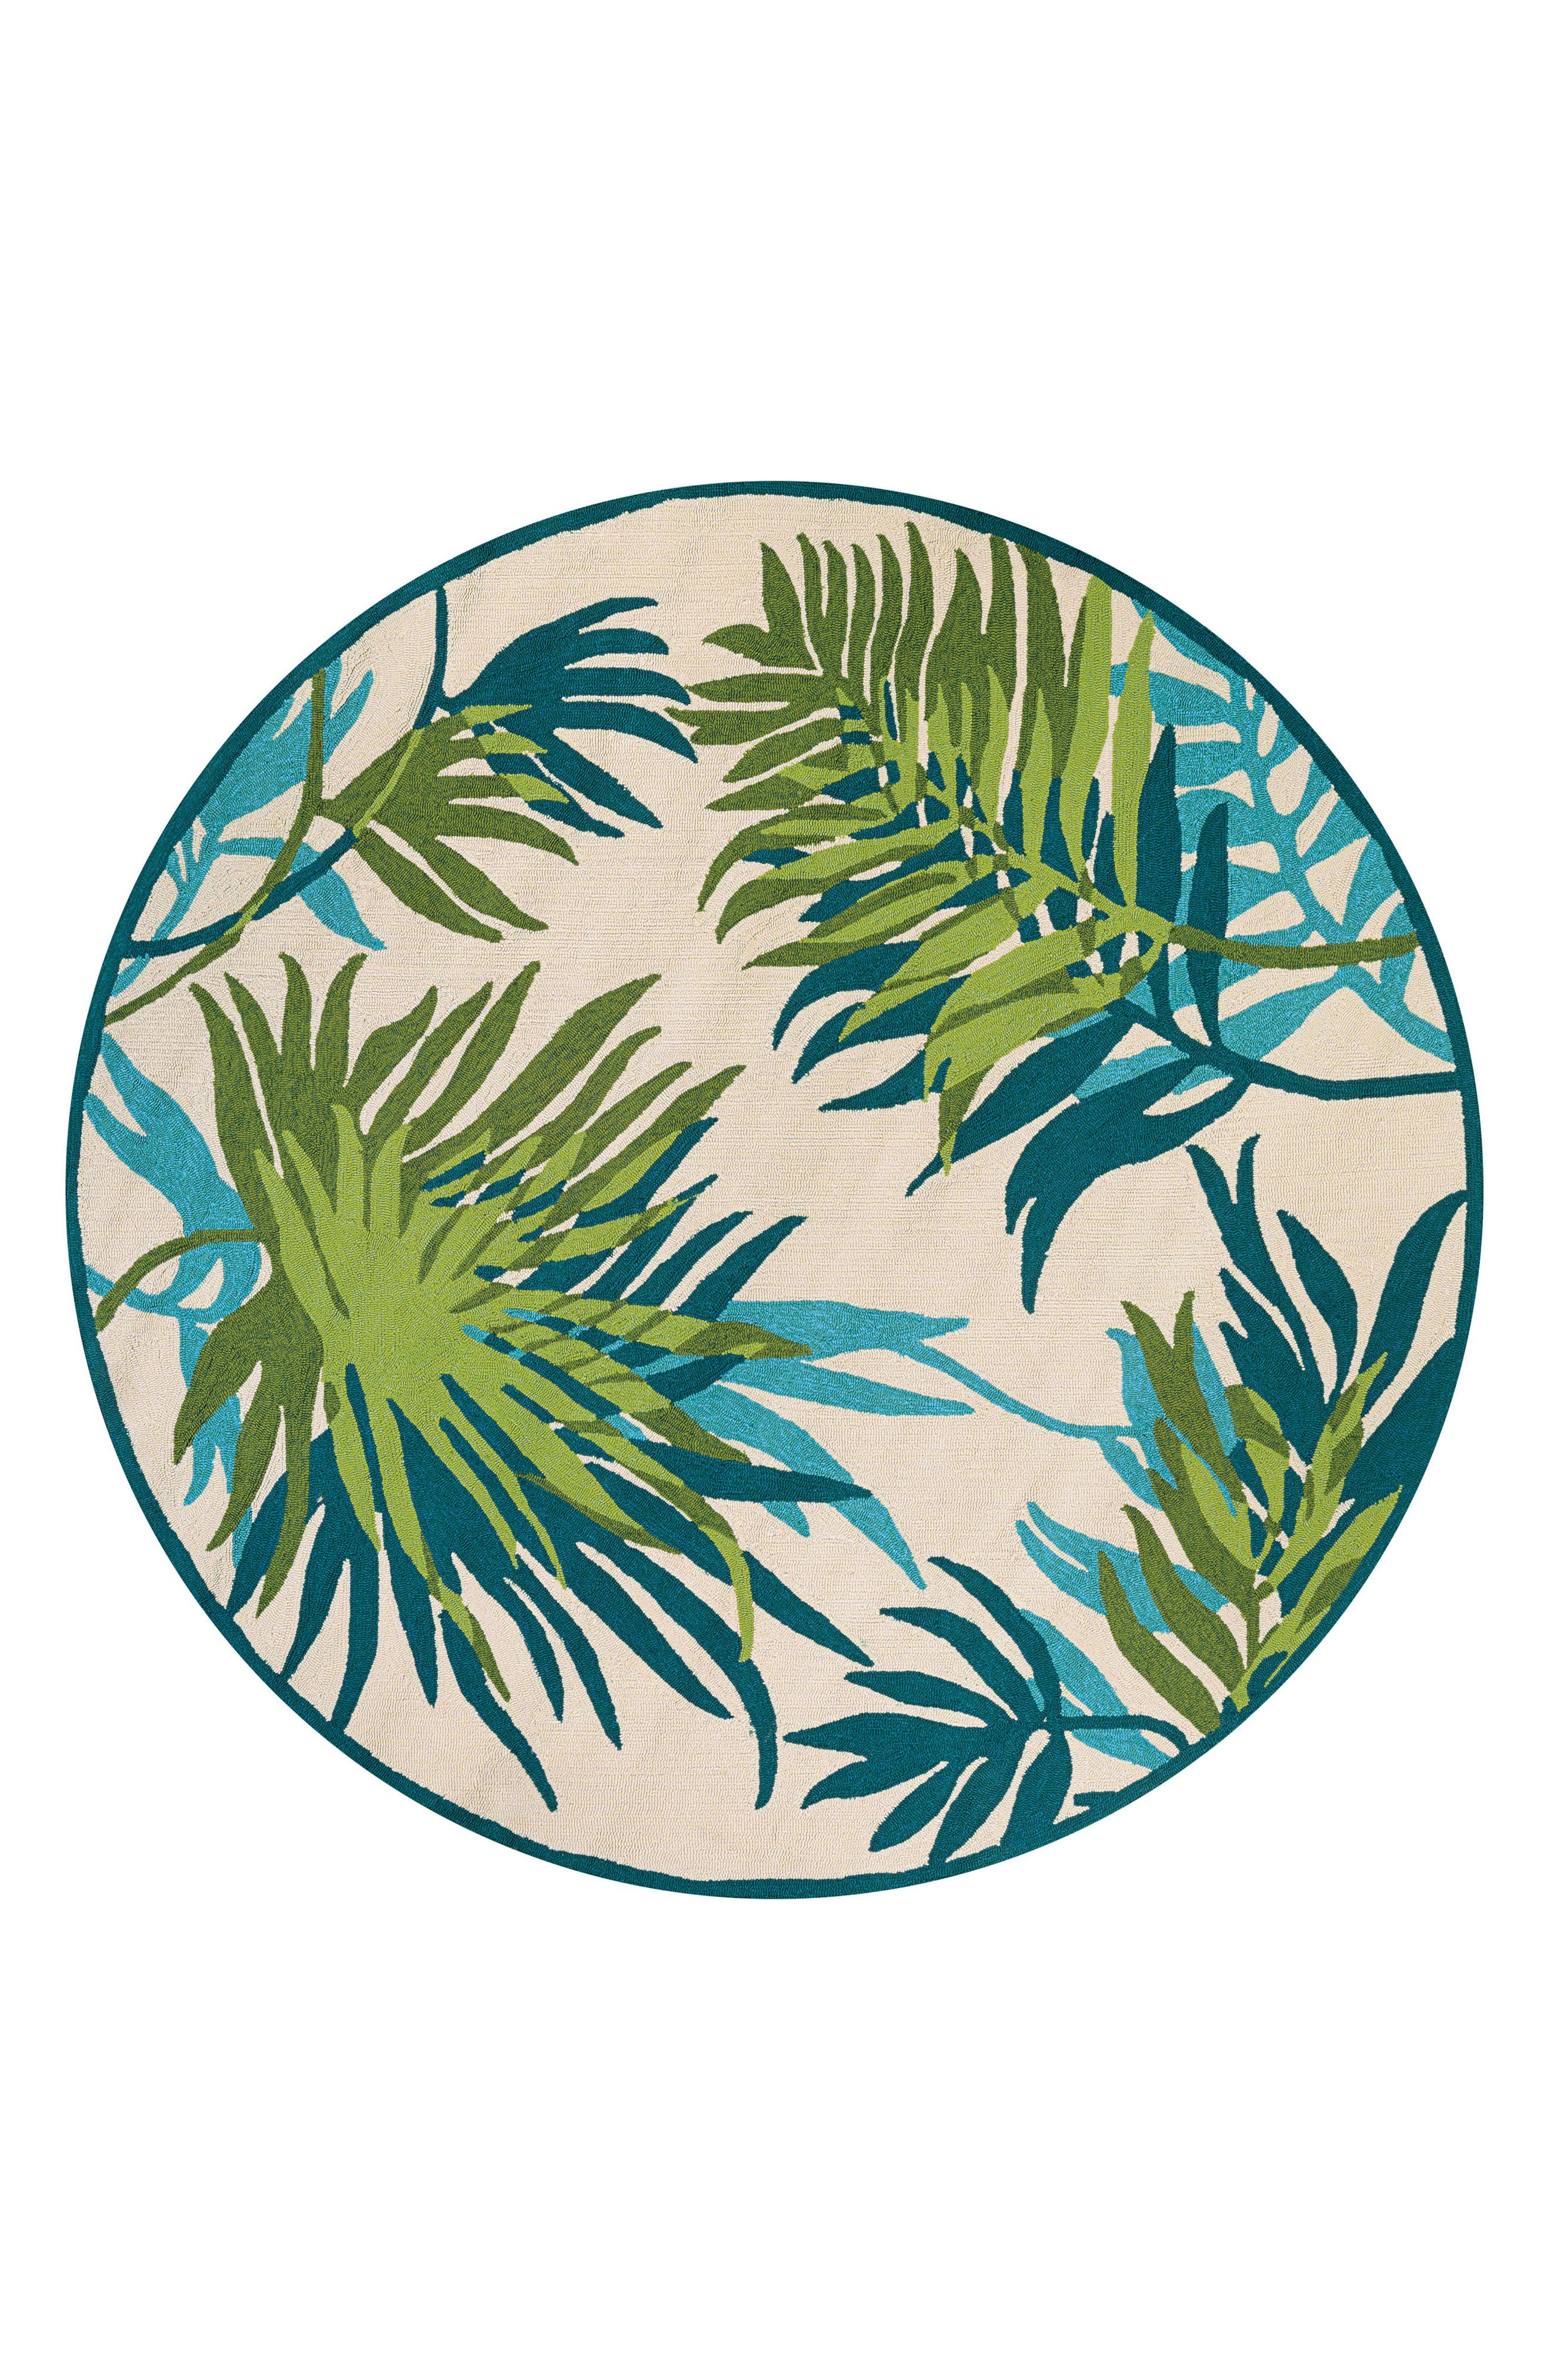 Alternate Image 1 Selected - Couristan Jungle Leaves Indoor/Outdoor Rug